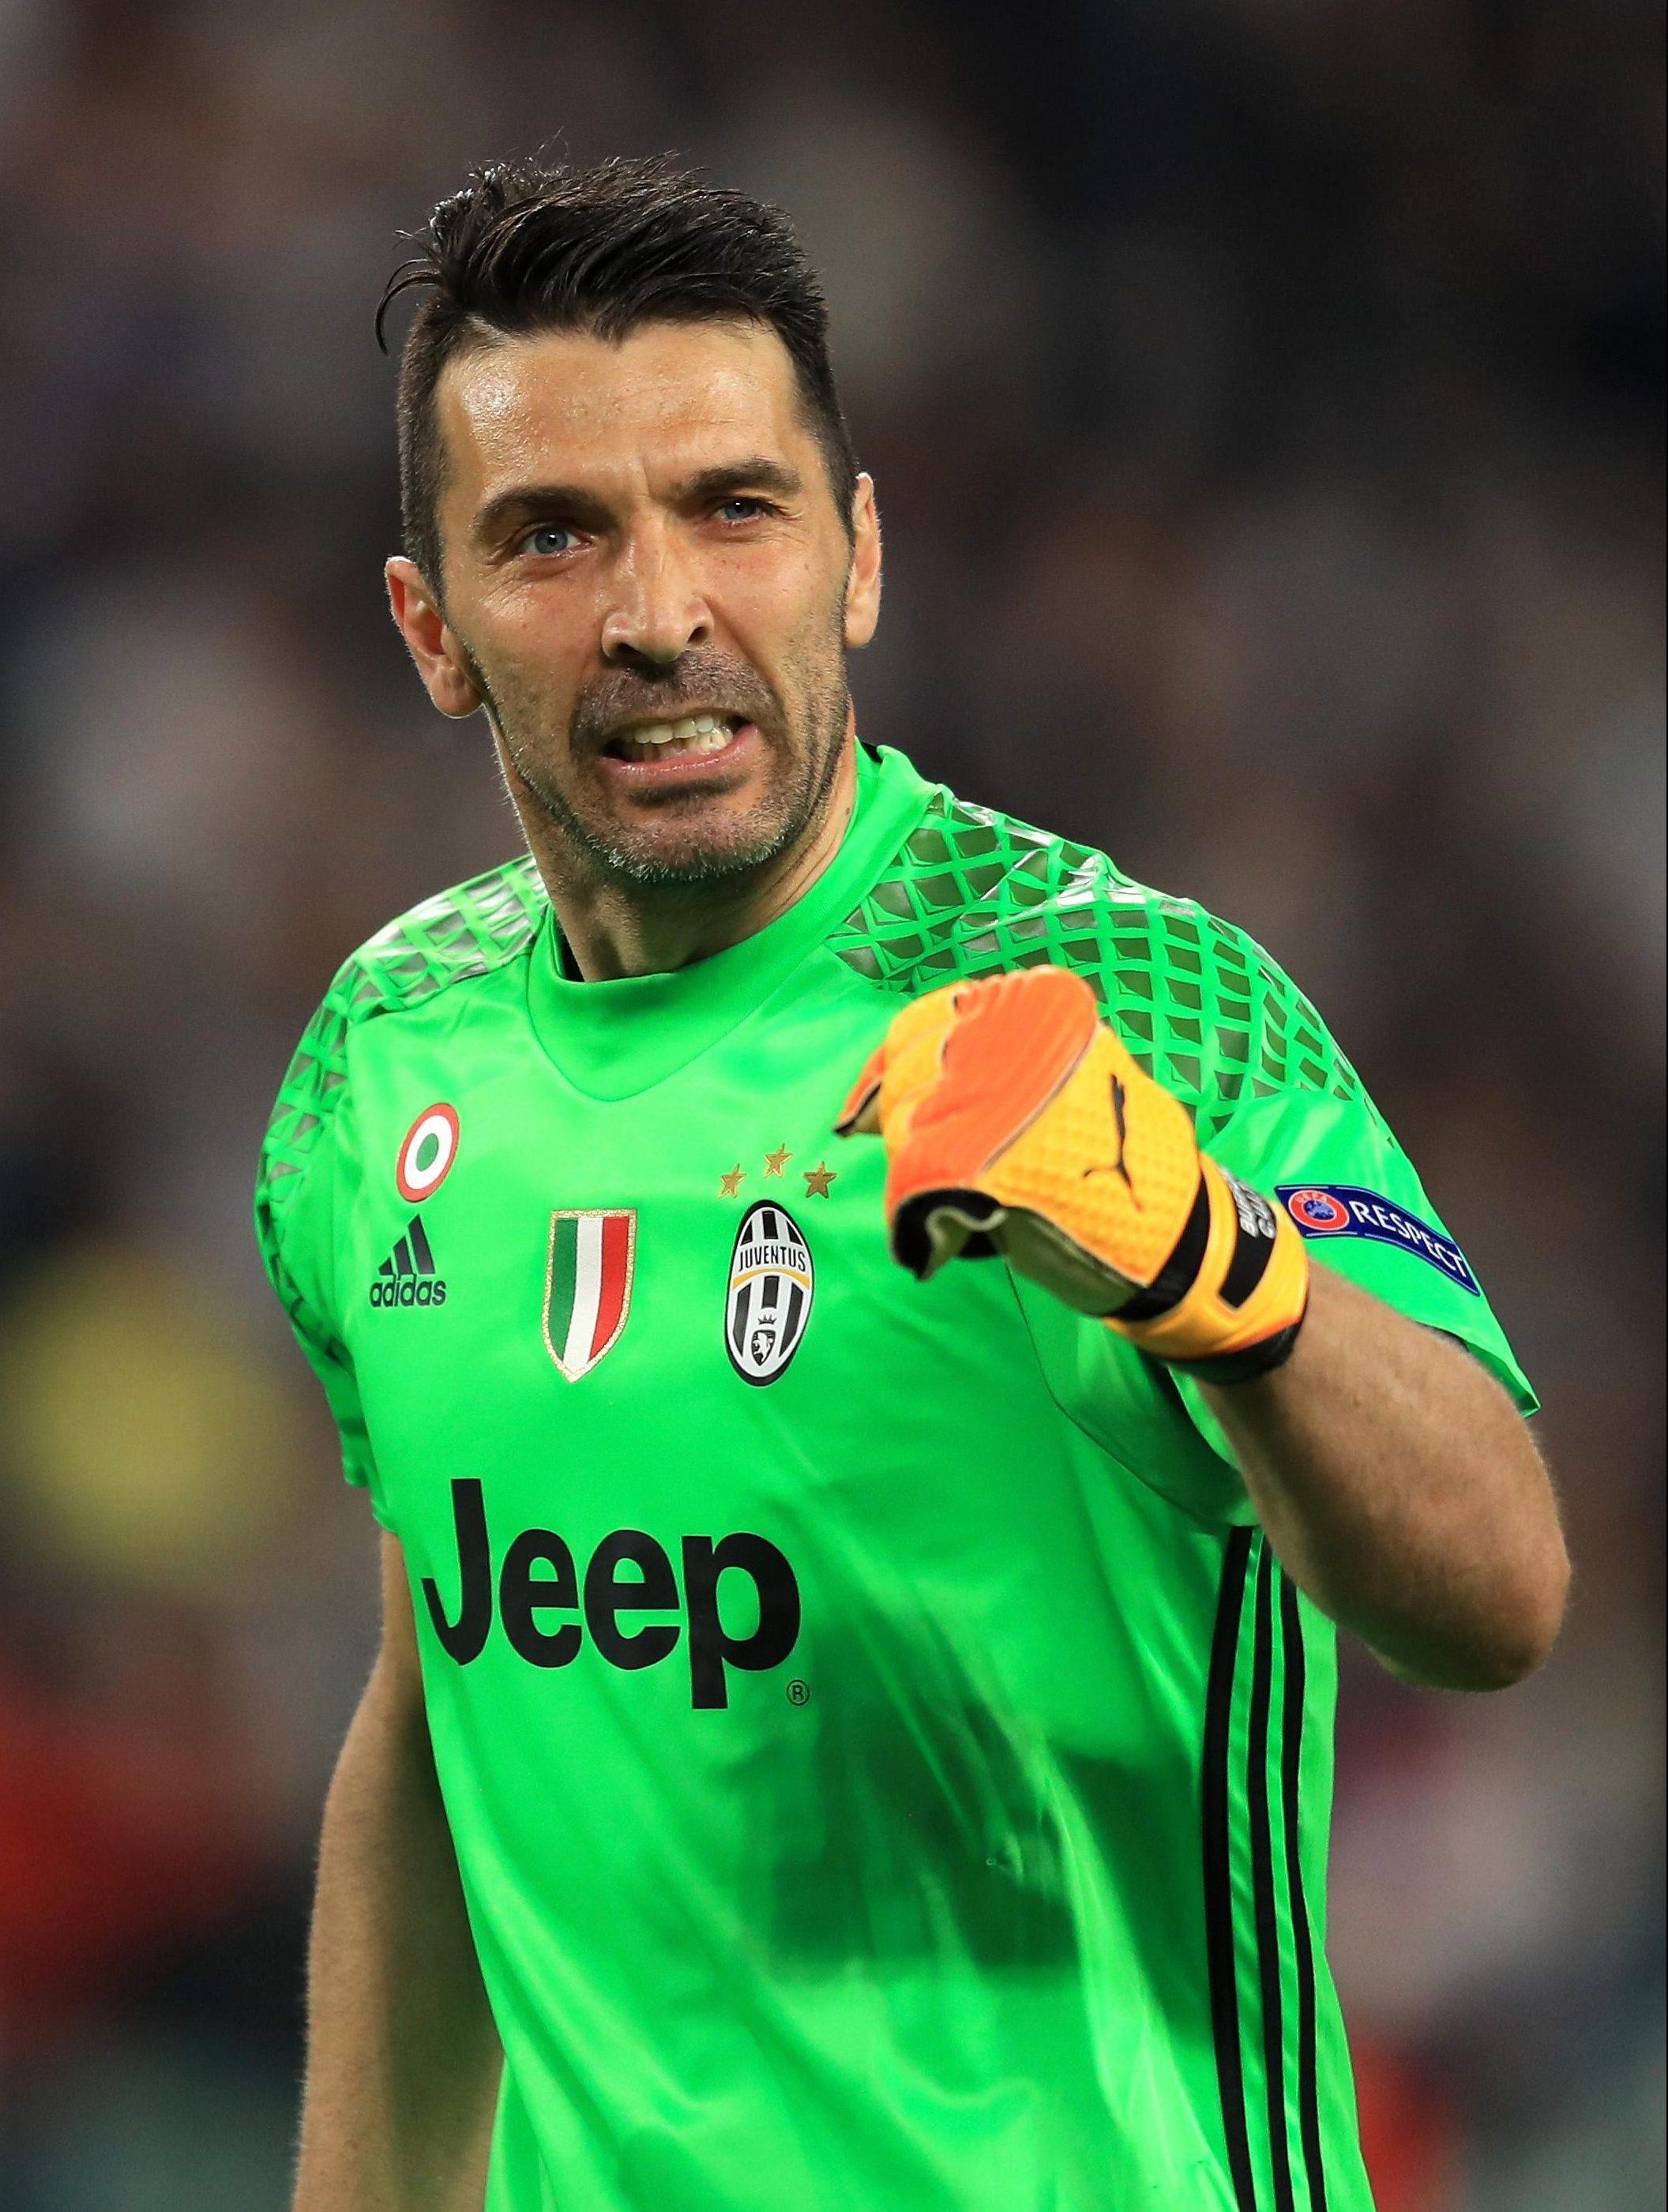 Legendary Juventus keeper Gianluigi Buffon remains on course to win his first-ever Champions League